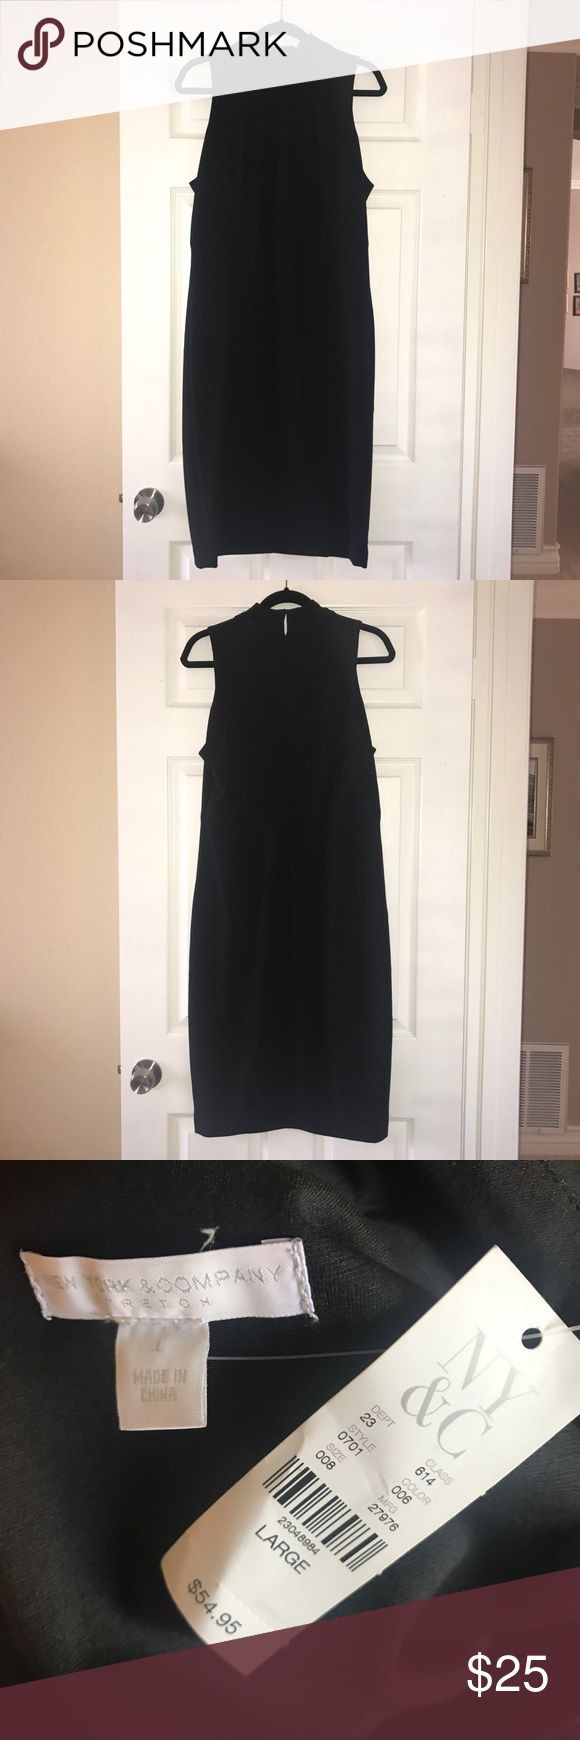 New York & Company Black Midi Dress Purchased a couple of years ago. NEVER WORN!! BRAND NEW!! Tags are still attached. No flaws, no defects, no damages, no stains, no signs of wear.   Sizing runs true to size.  My mom tried this on, she's 5'9, weighs about 170 pounds and has 36D breasts and it fit her perfectly.  It does have a stretchy material. Extremely versatile.   NO TRADES!! NO MODELING!! PRICE IS FAIR, FIRM & FINAL!! ALL OFFERS WILL BE DECLINED! New York & Company Dresses Midi